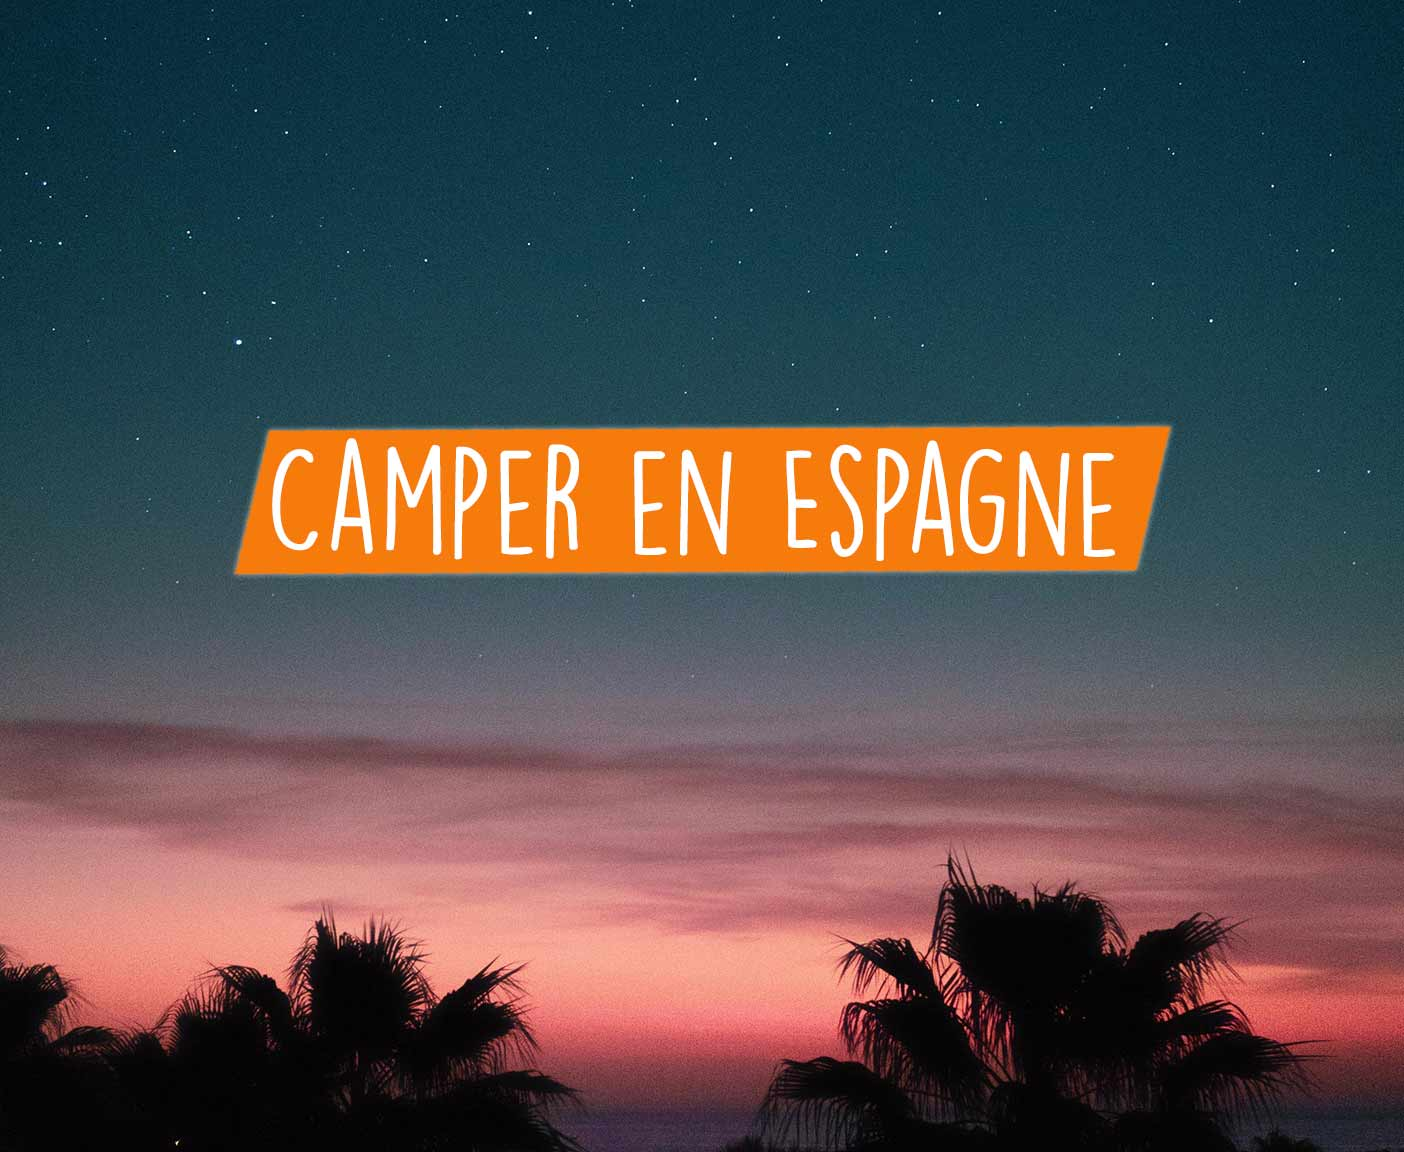 espagne-camper-roadtrip-europe-vanlife